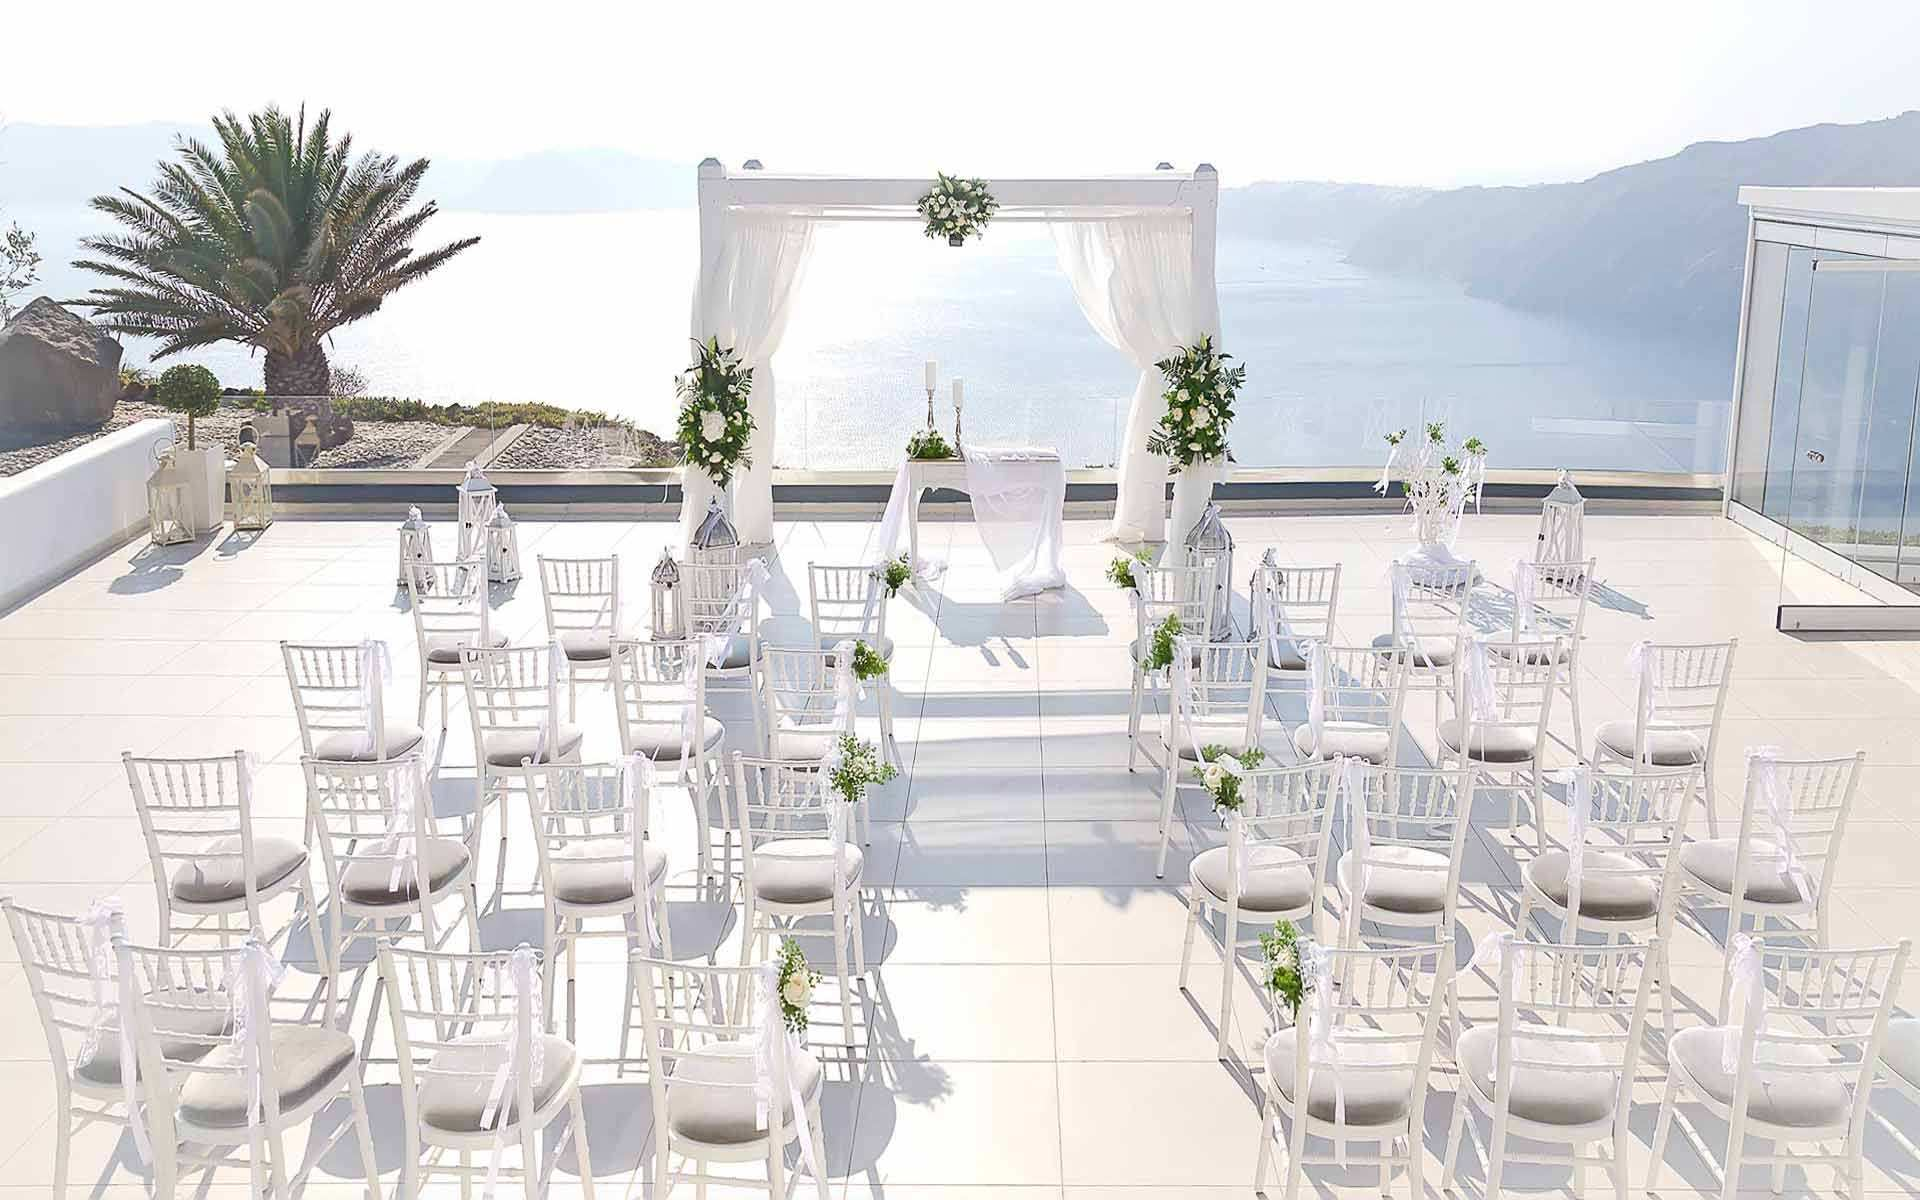 Le-Ciel-wedding-set-up-Santorini-by-Diamond-Events-Wedding-Event-planning-services